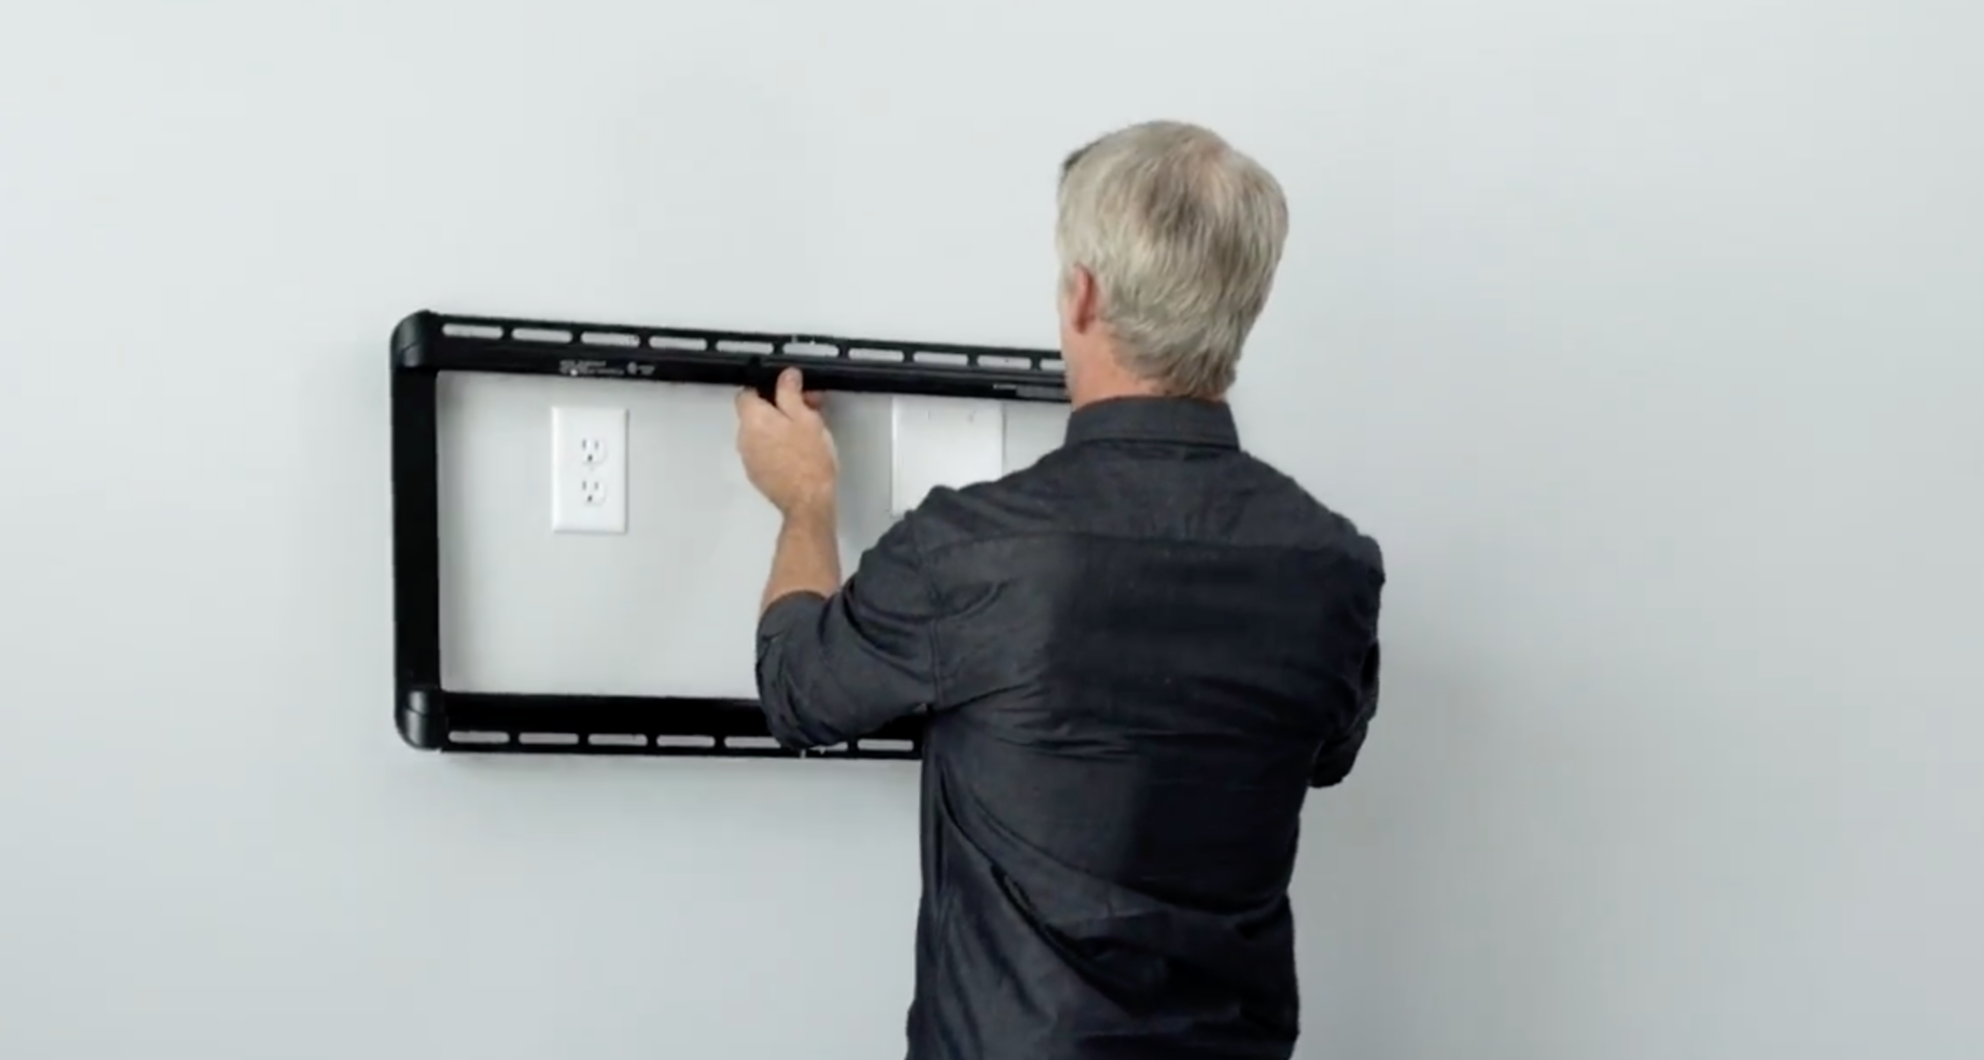 How to Mount a TV - A Step-by-Step Guide-1-1